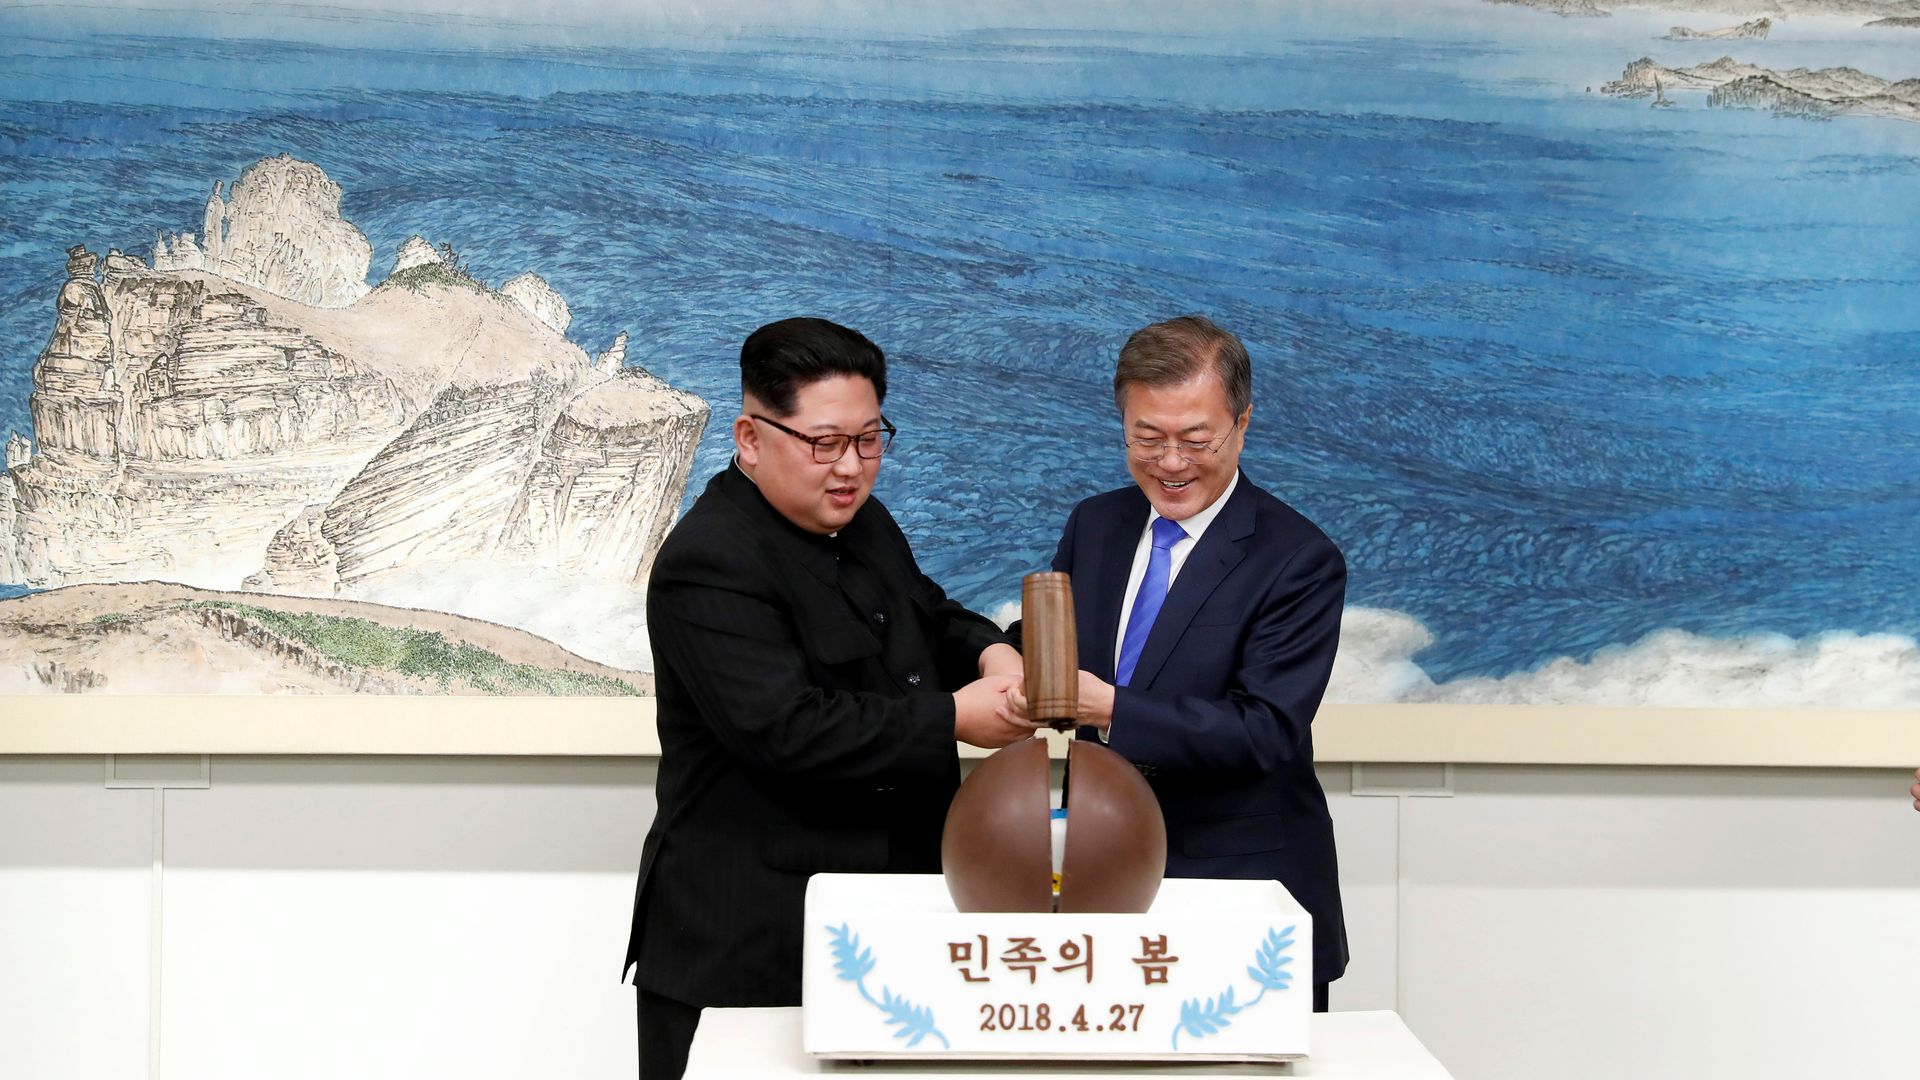 Kim Jong-un and Moon Jae-in take a mallet to a chocolate eggshell dessert